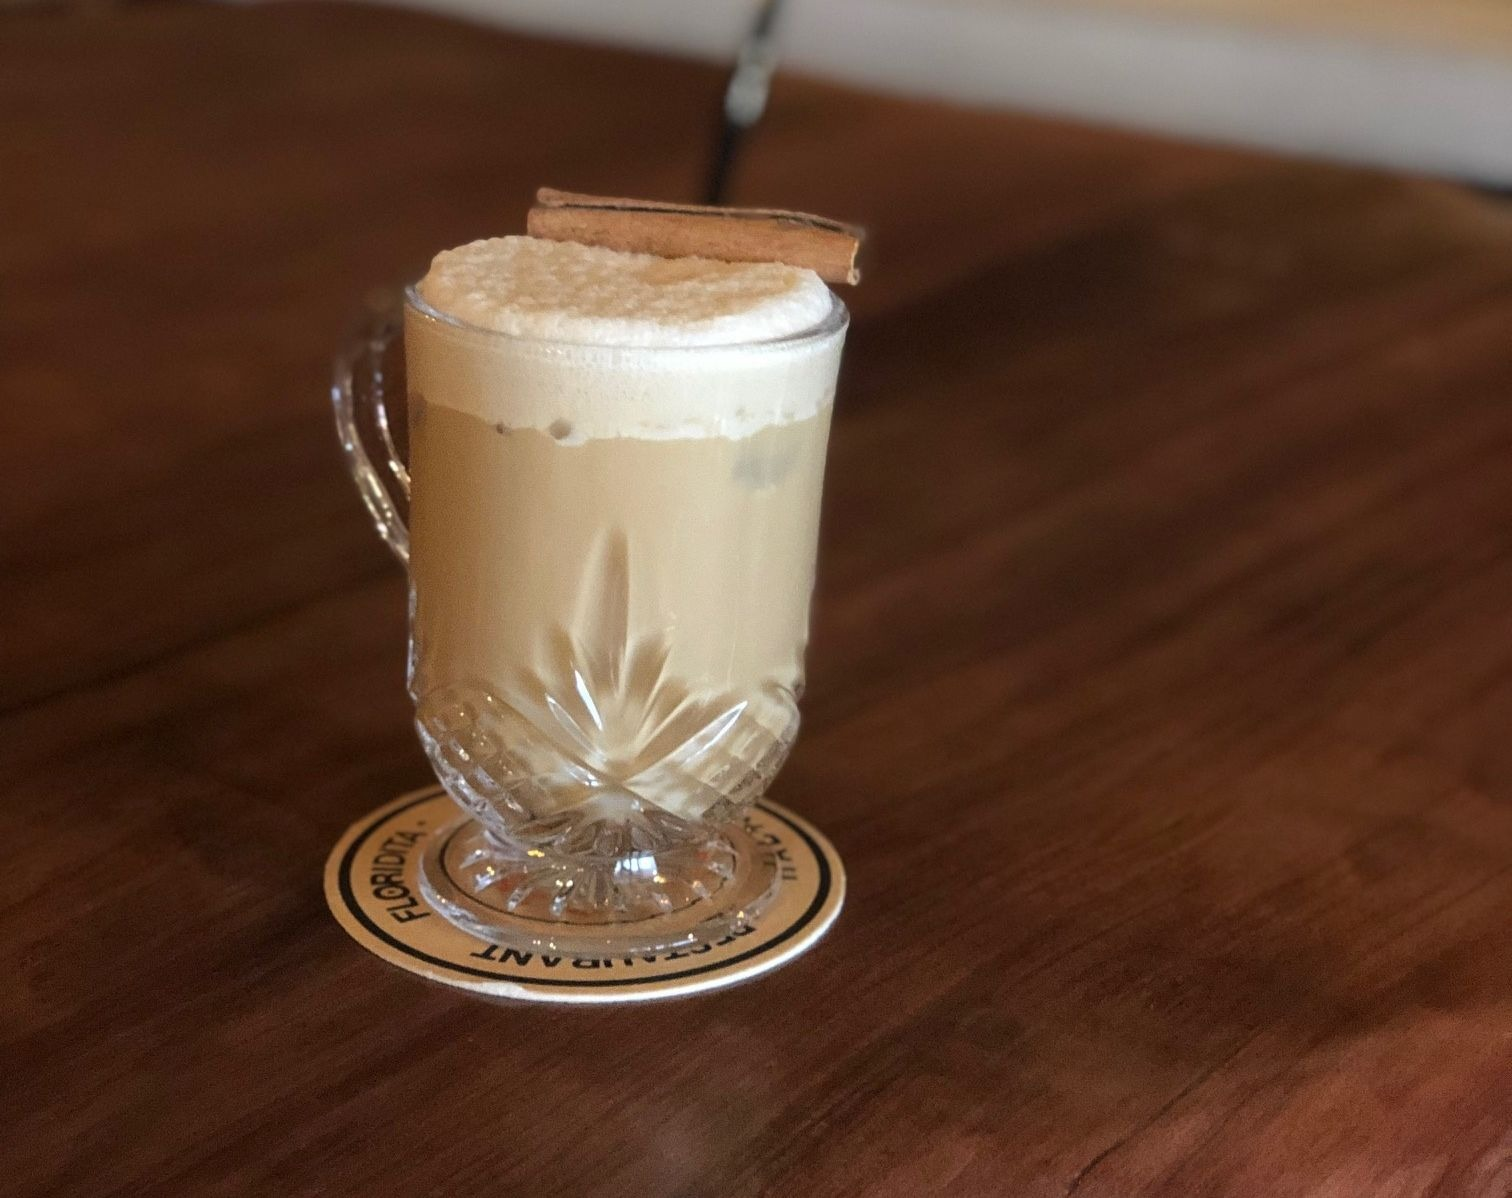 A beige cocktail with a foamy top and cinnamon stick garnish —the CoffeeCha at Gustazo in Cambridge —is shown here served in a glass mug on a wooden table